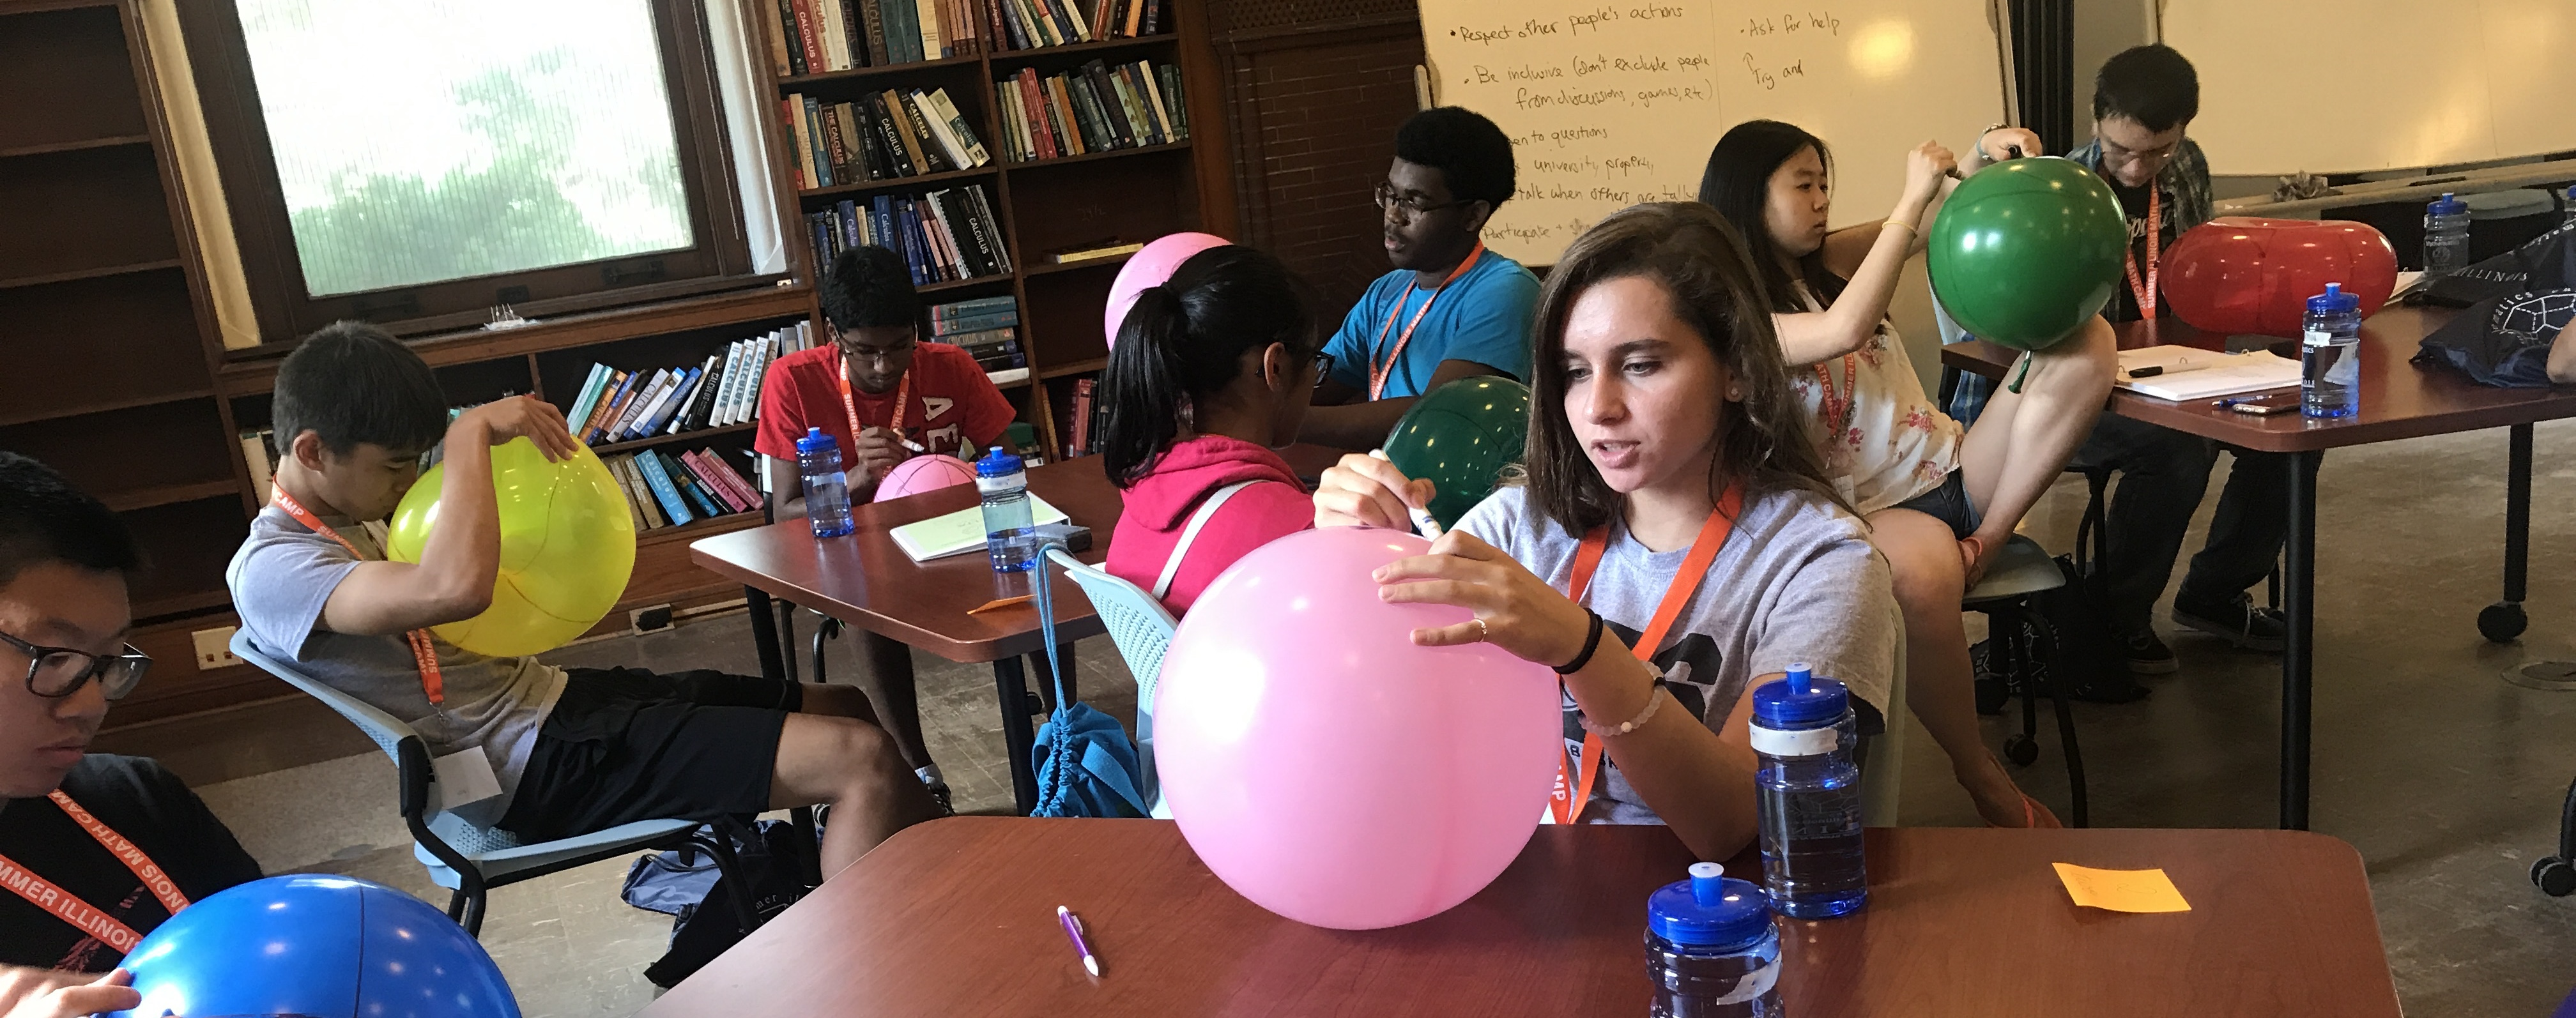 Campers drawing on balloons